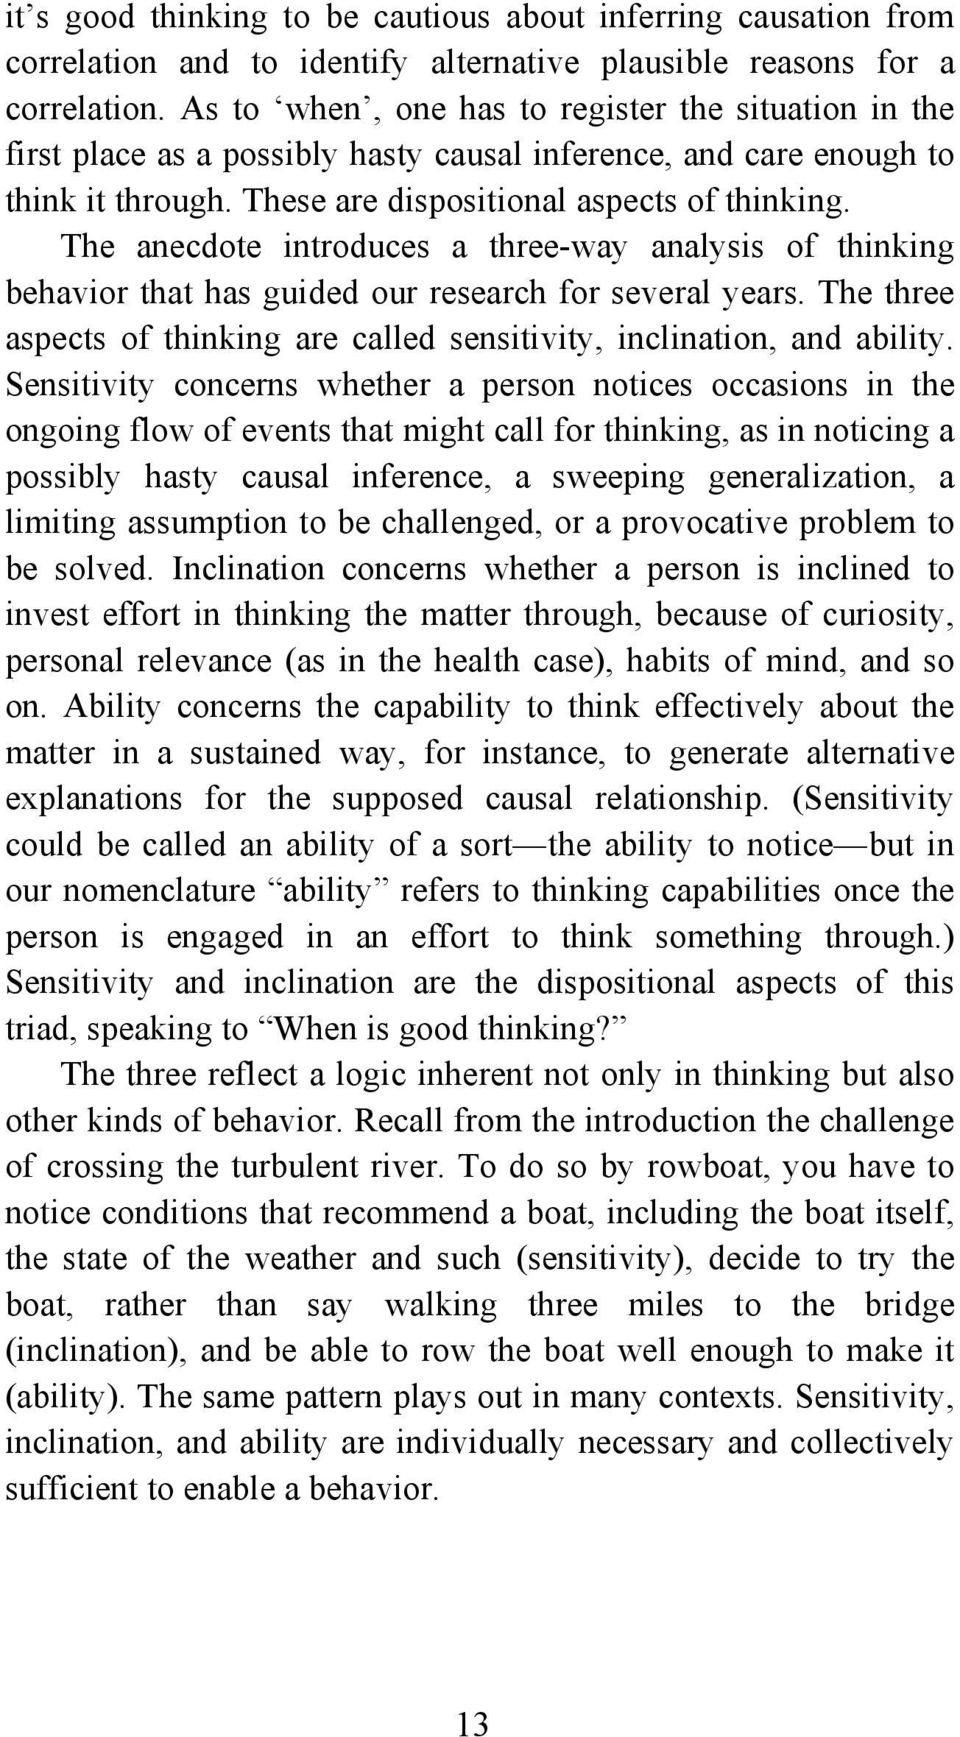 The anecdote introduces a three-way analysis of thinking behavior that has guided our research for several years. The three aspects of thinking are called sensitivity, inclination, and ability.